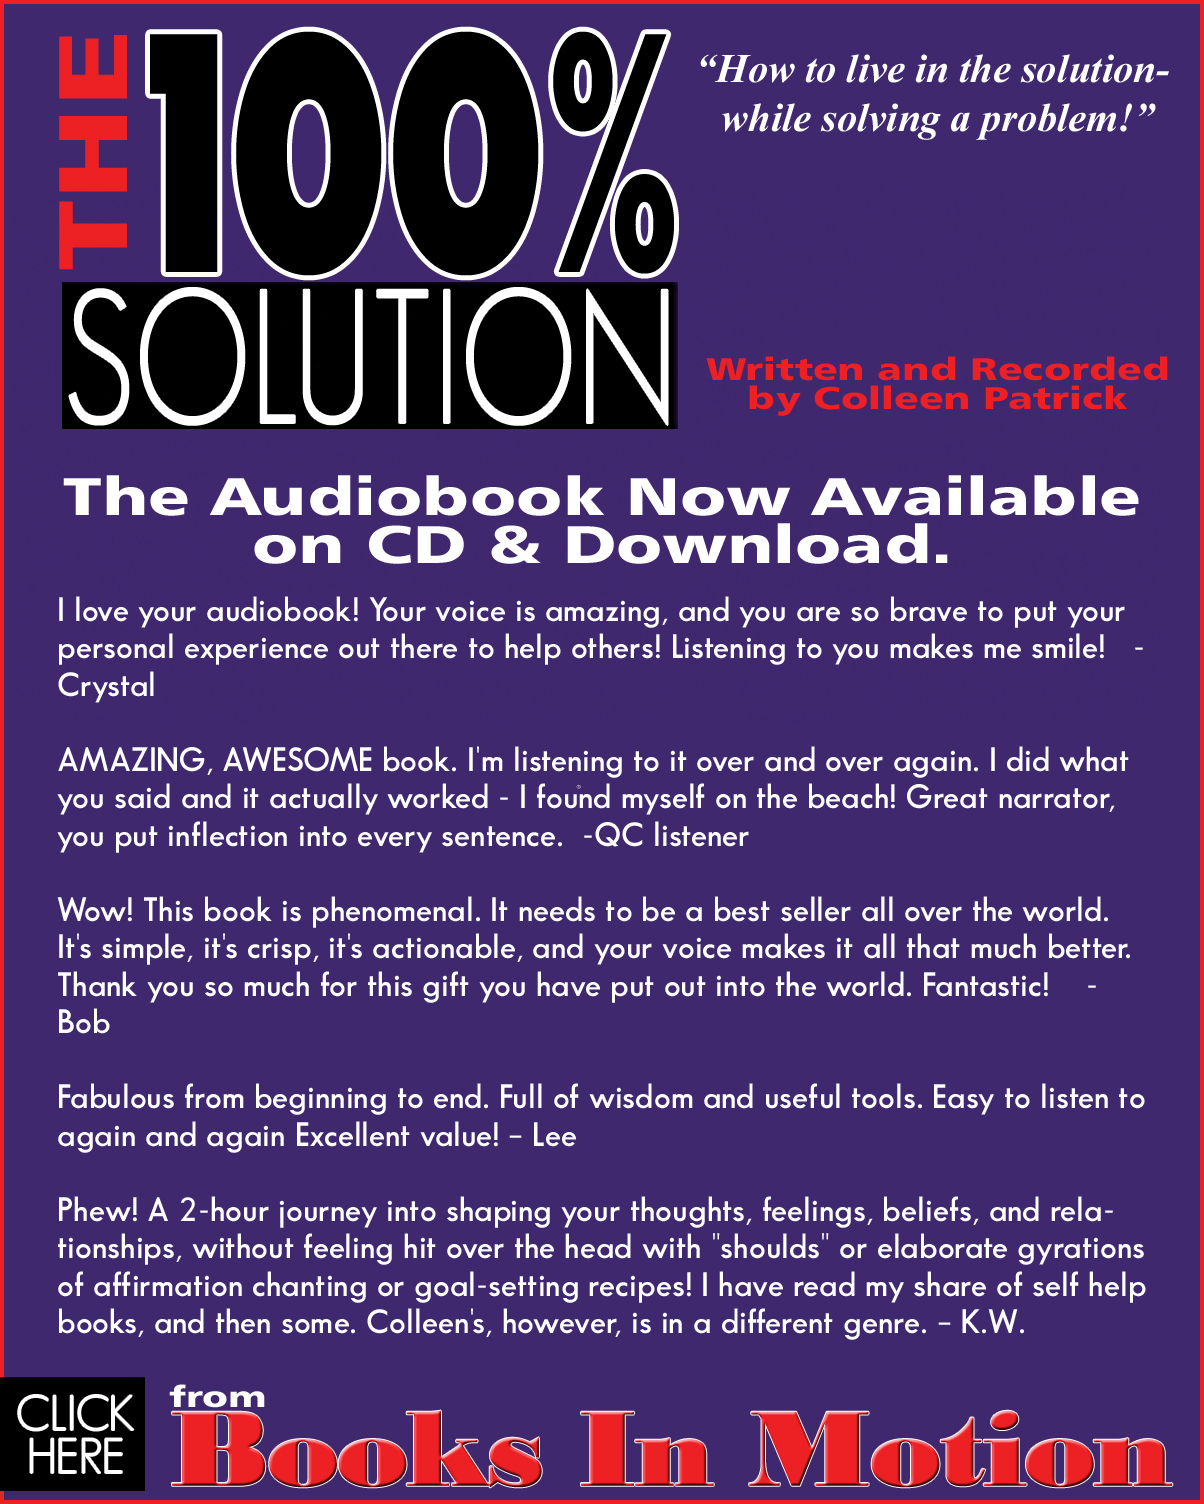 The 100% Solution cover